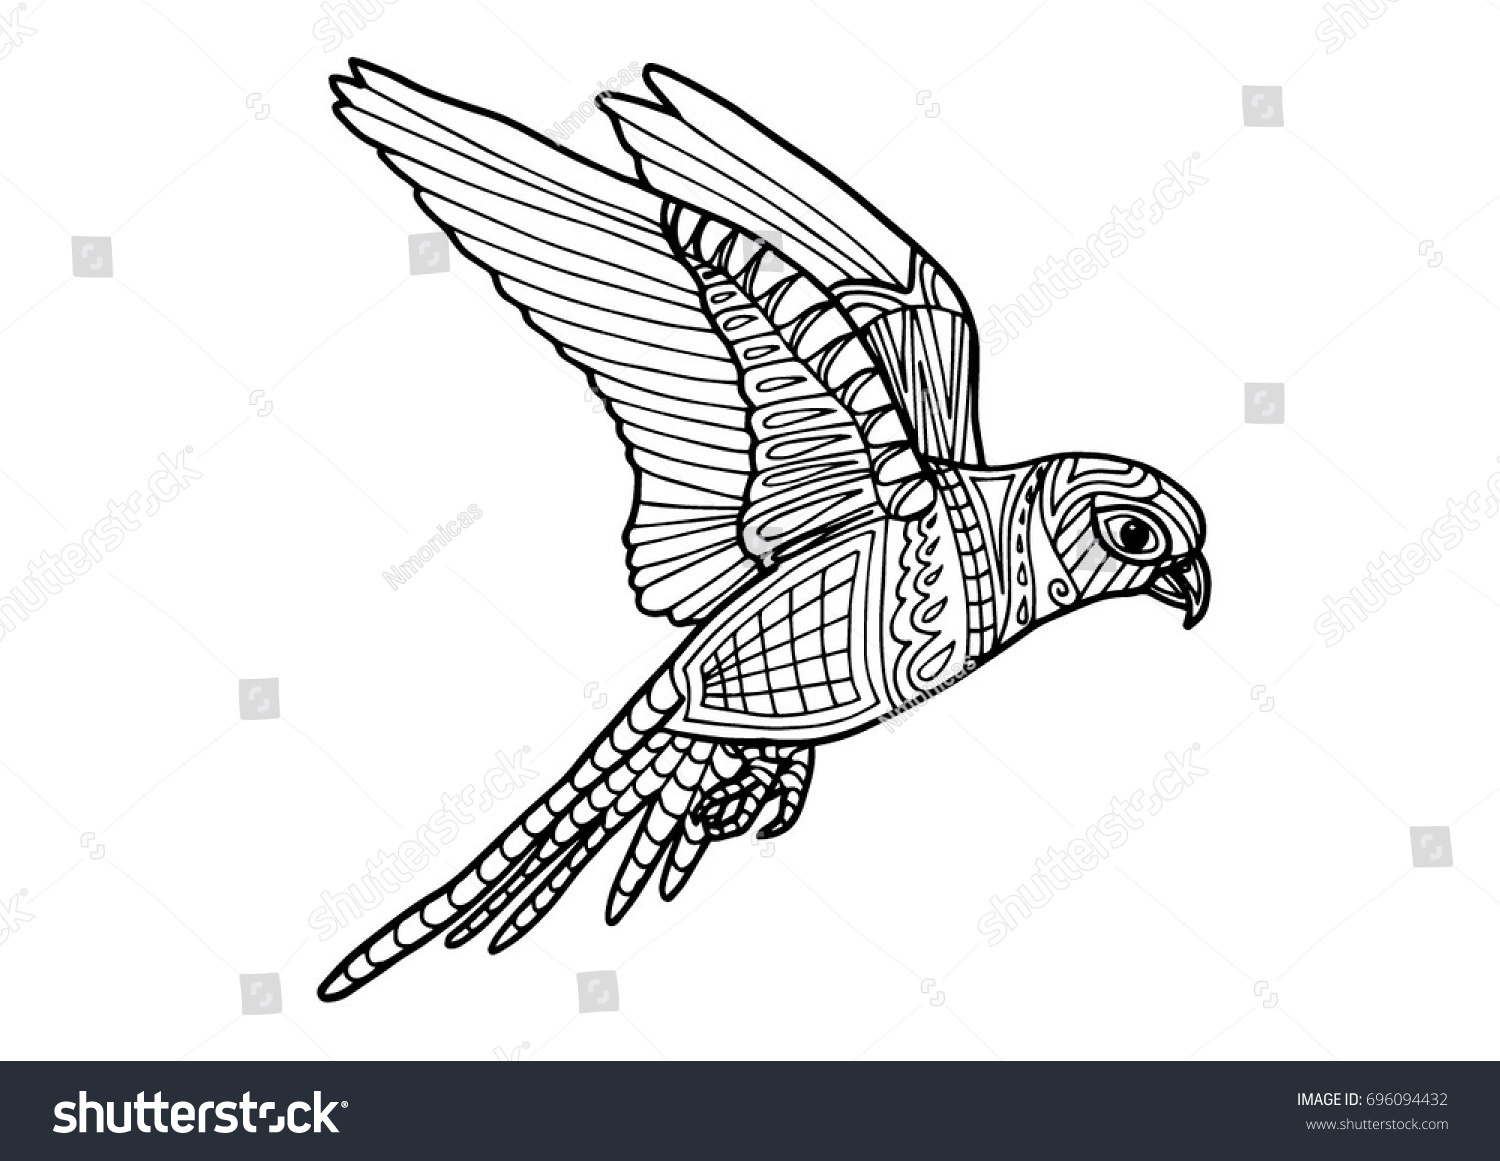 coloring page book parrot bird color stock vector 696094432